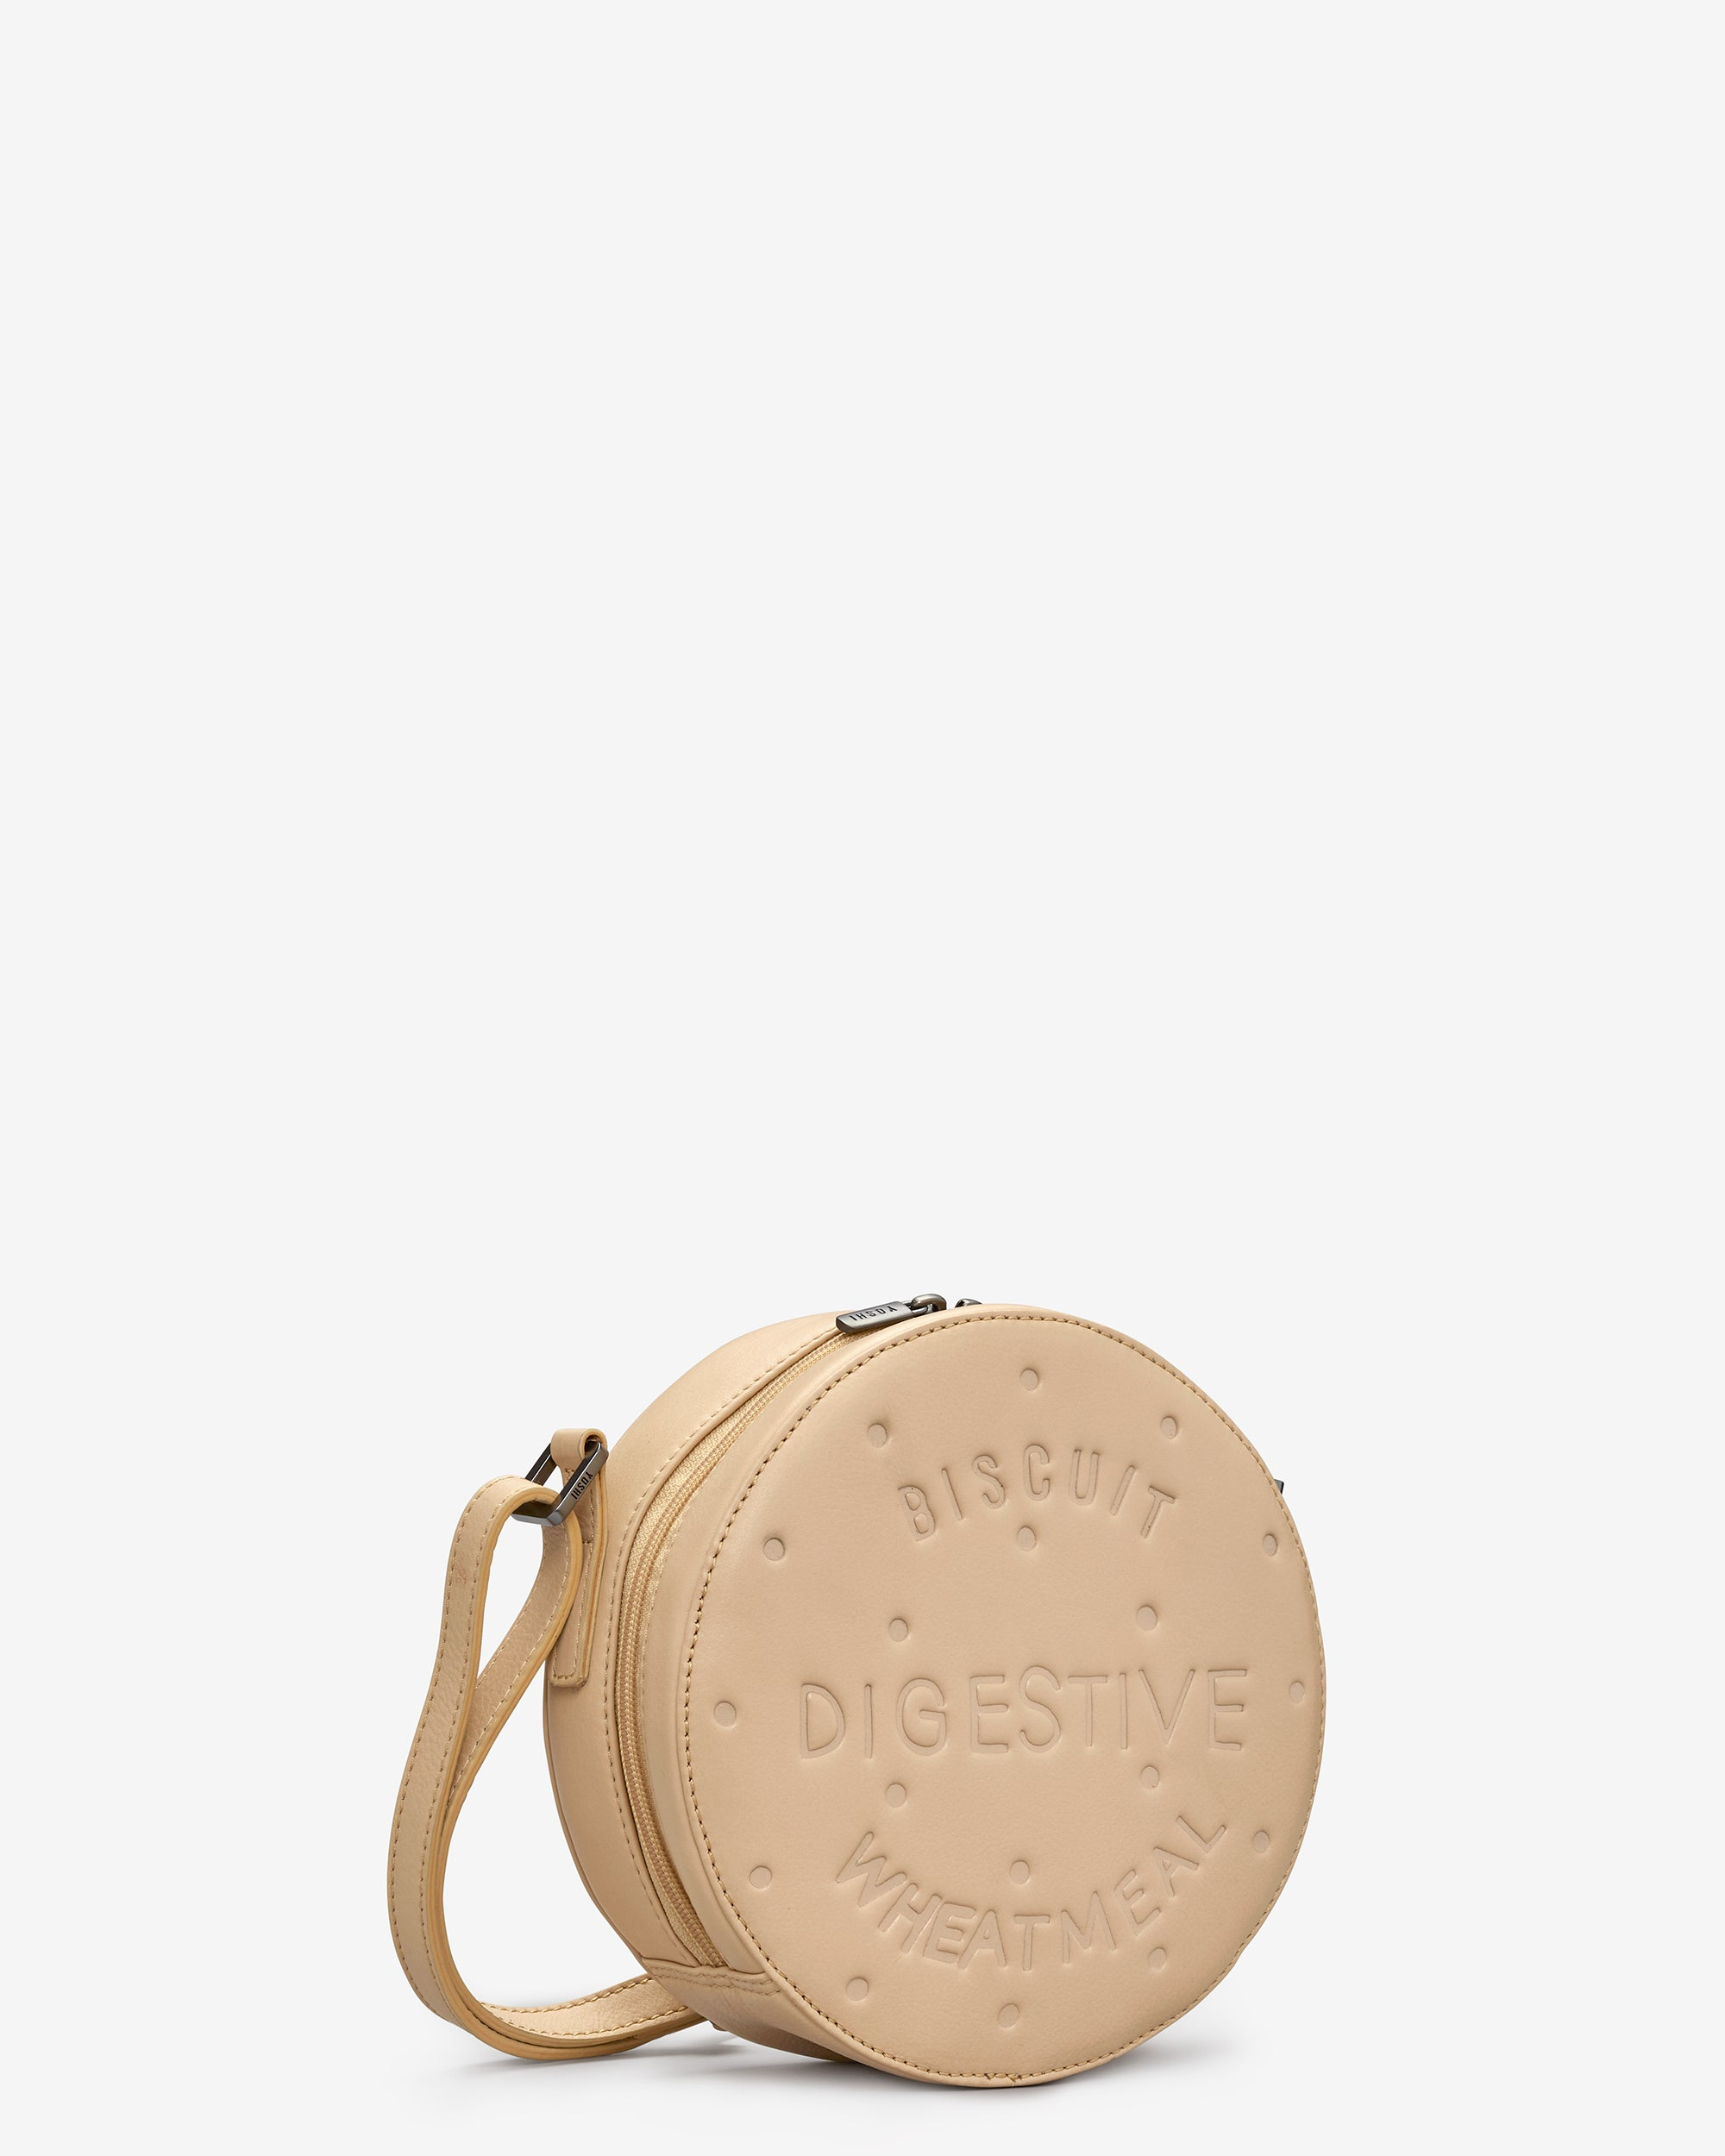 8a9139f15bcf Digestive Biscuit Cream Leather Cross Body Bag